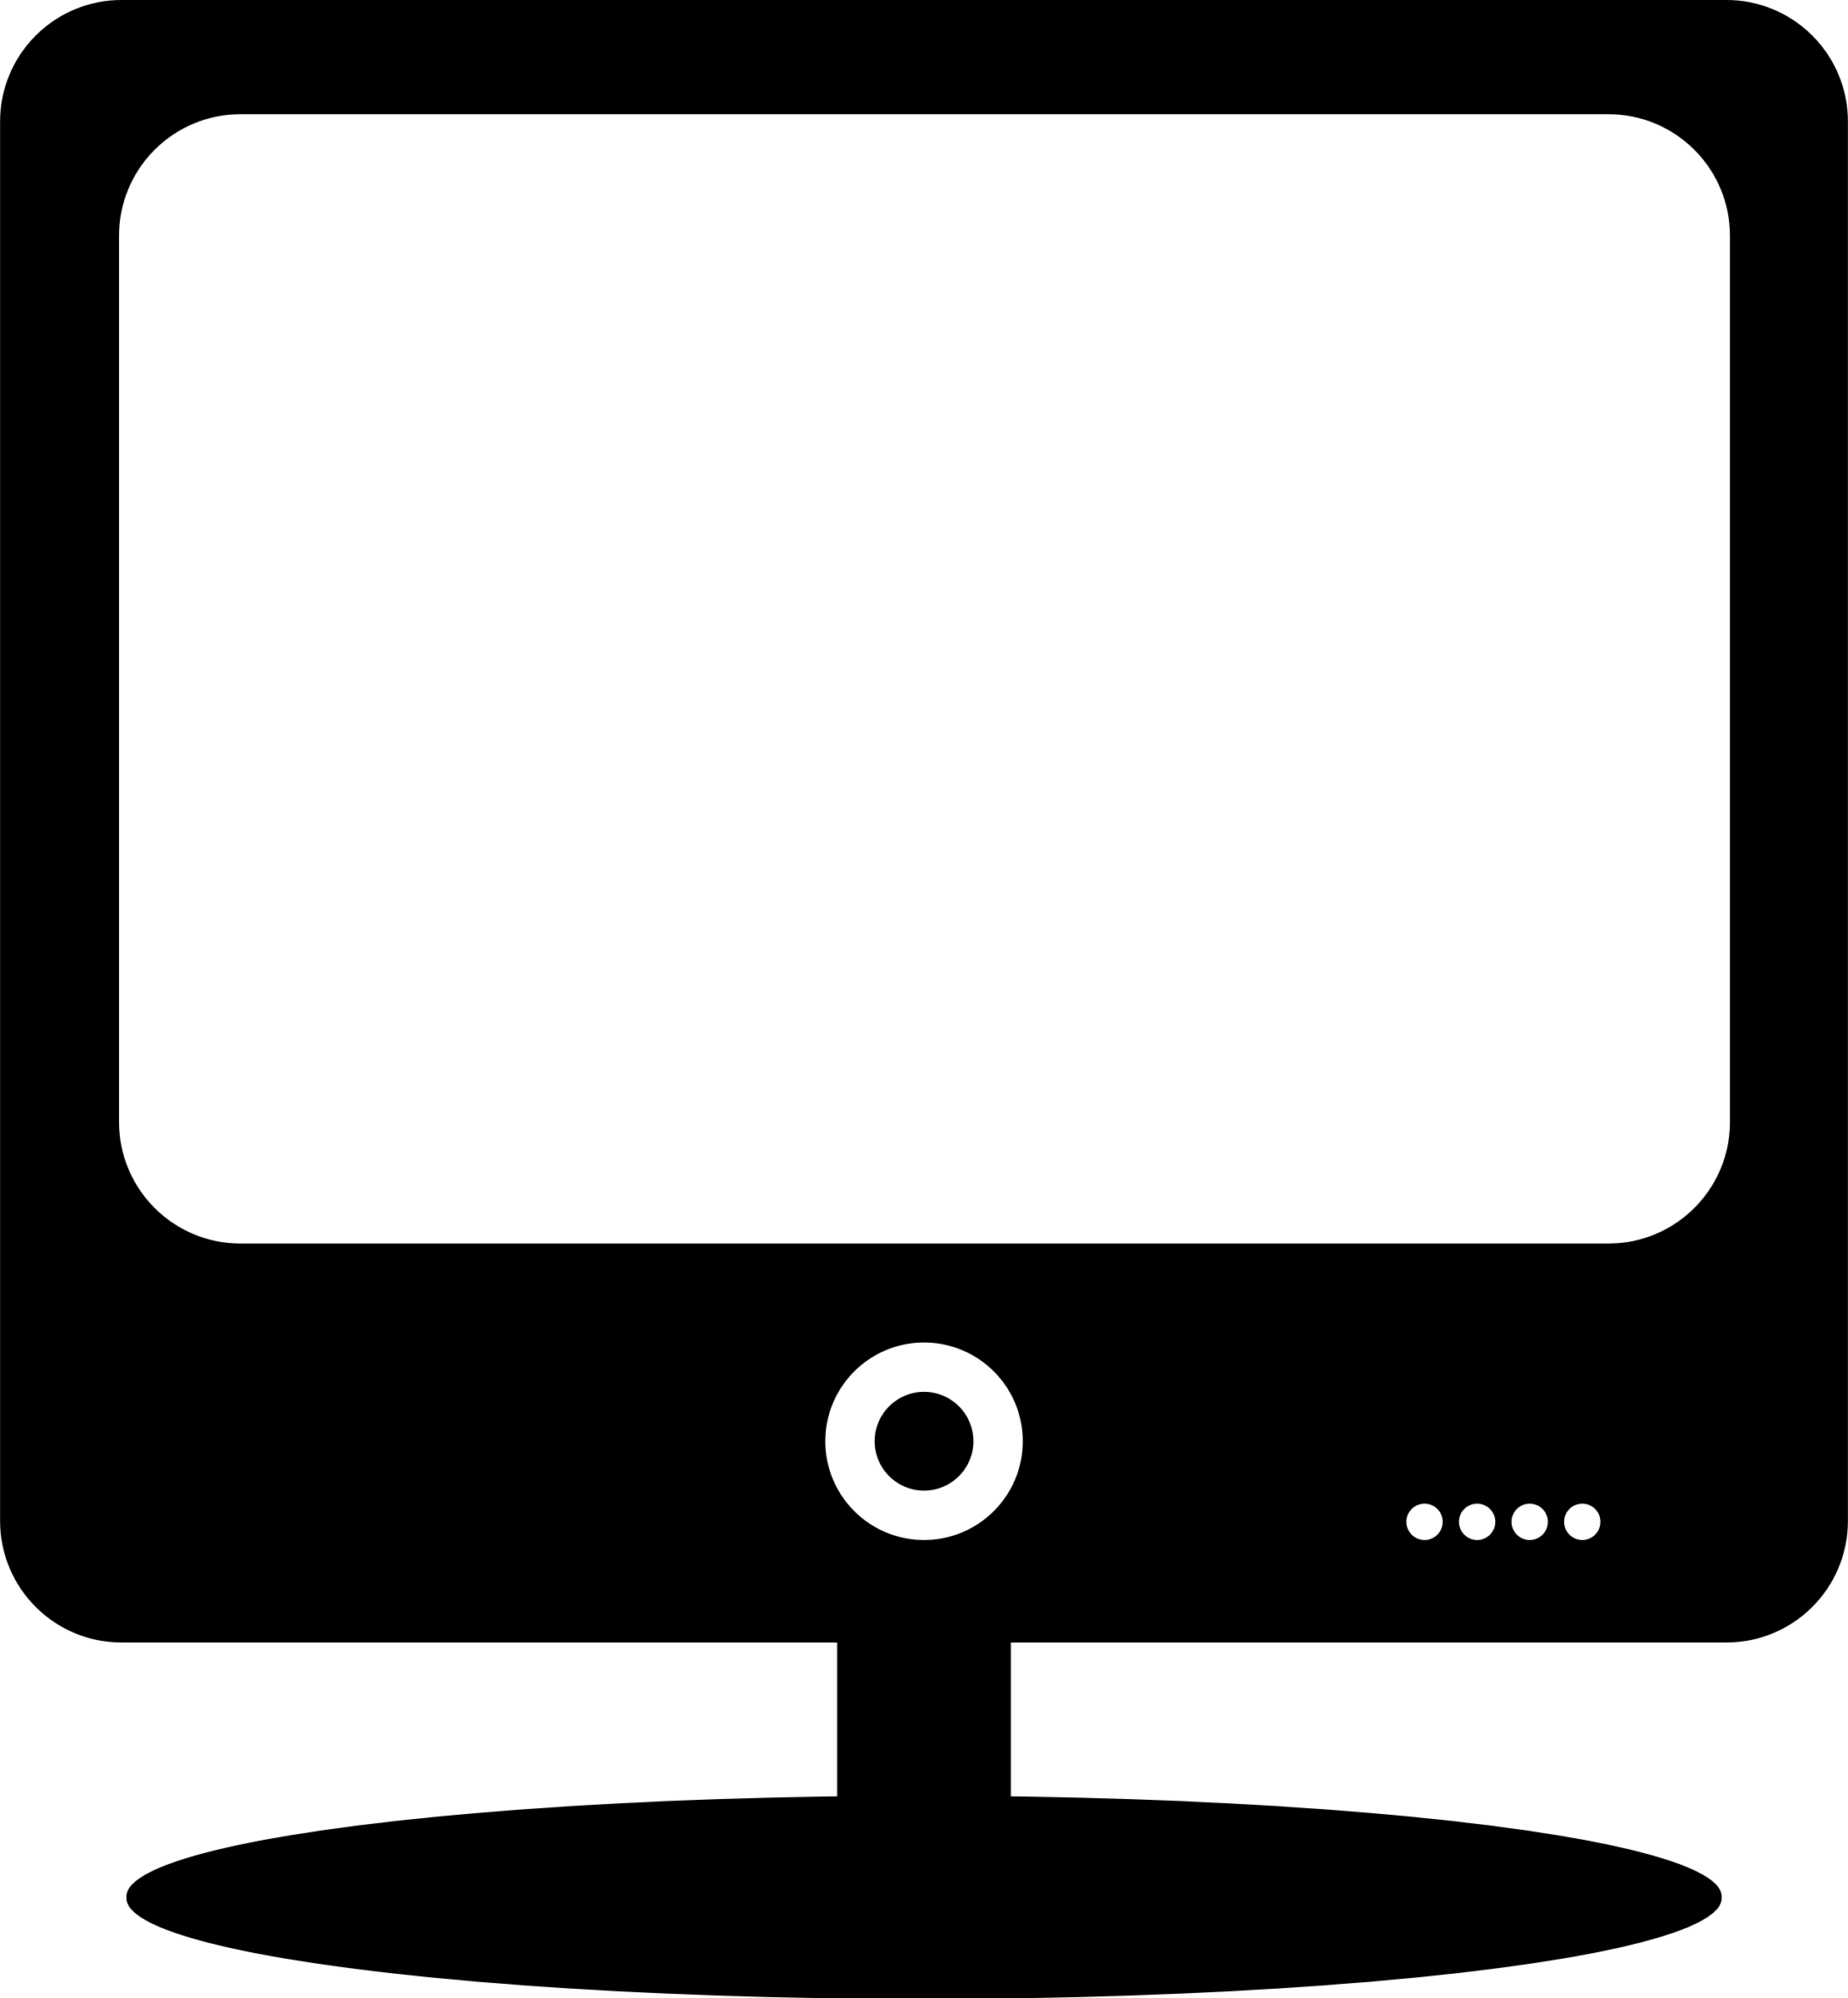 Computer Monitor Clipart Black And White 02.png